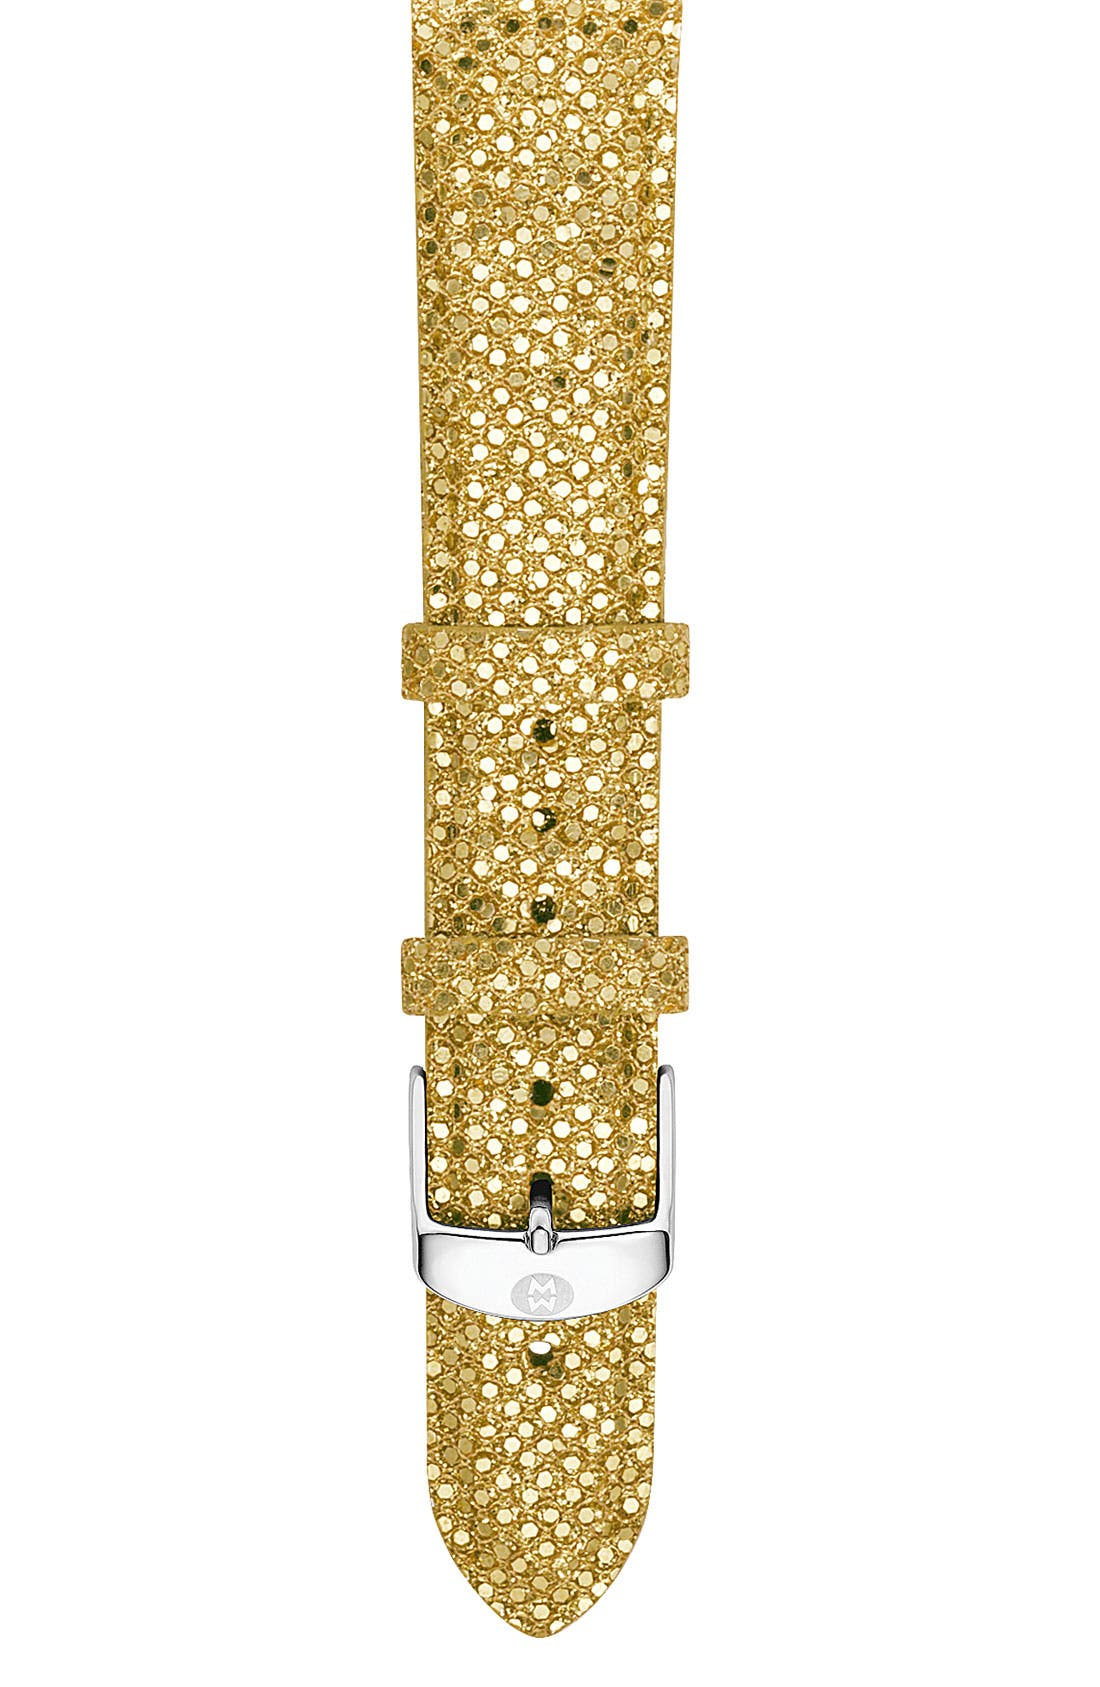 Alternate Image 1 Selected - MICHELE 16mm Sequin Watch Strap